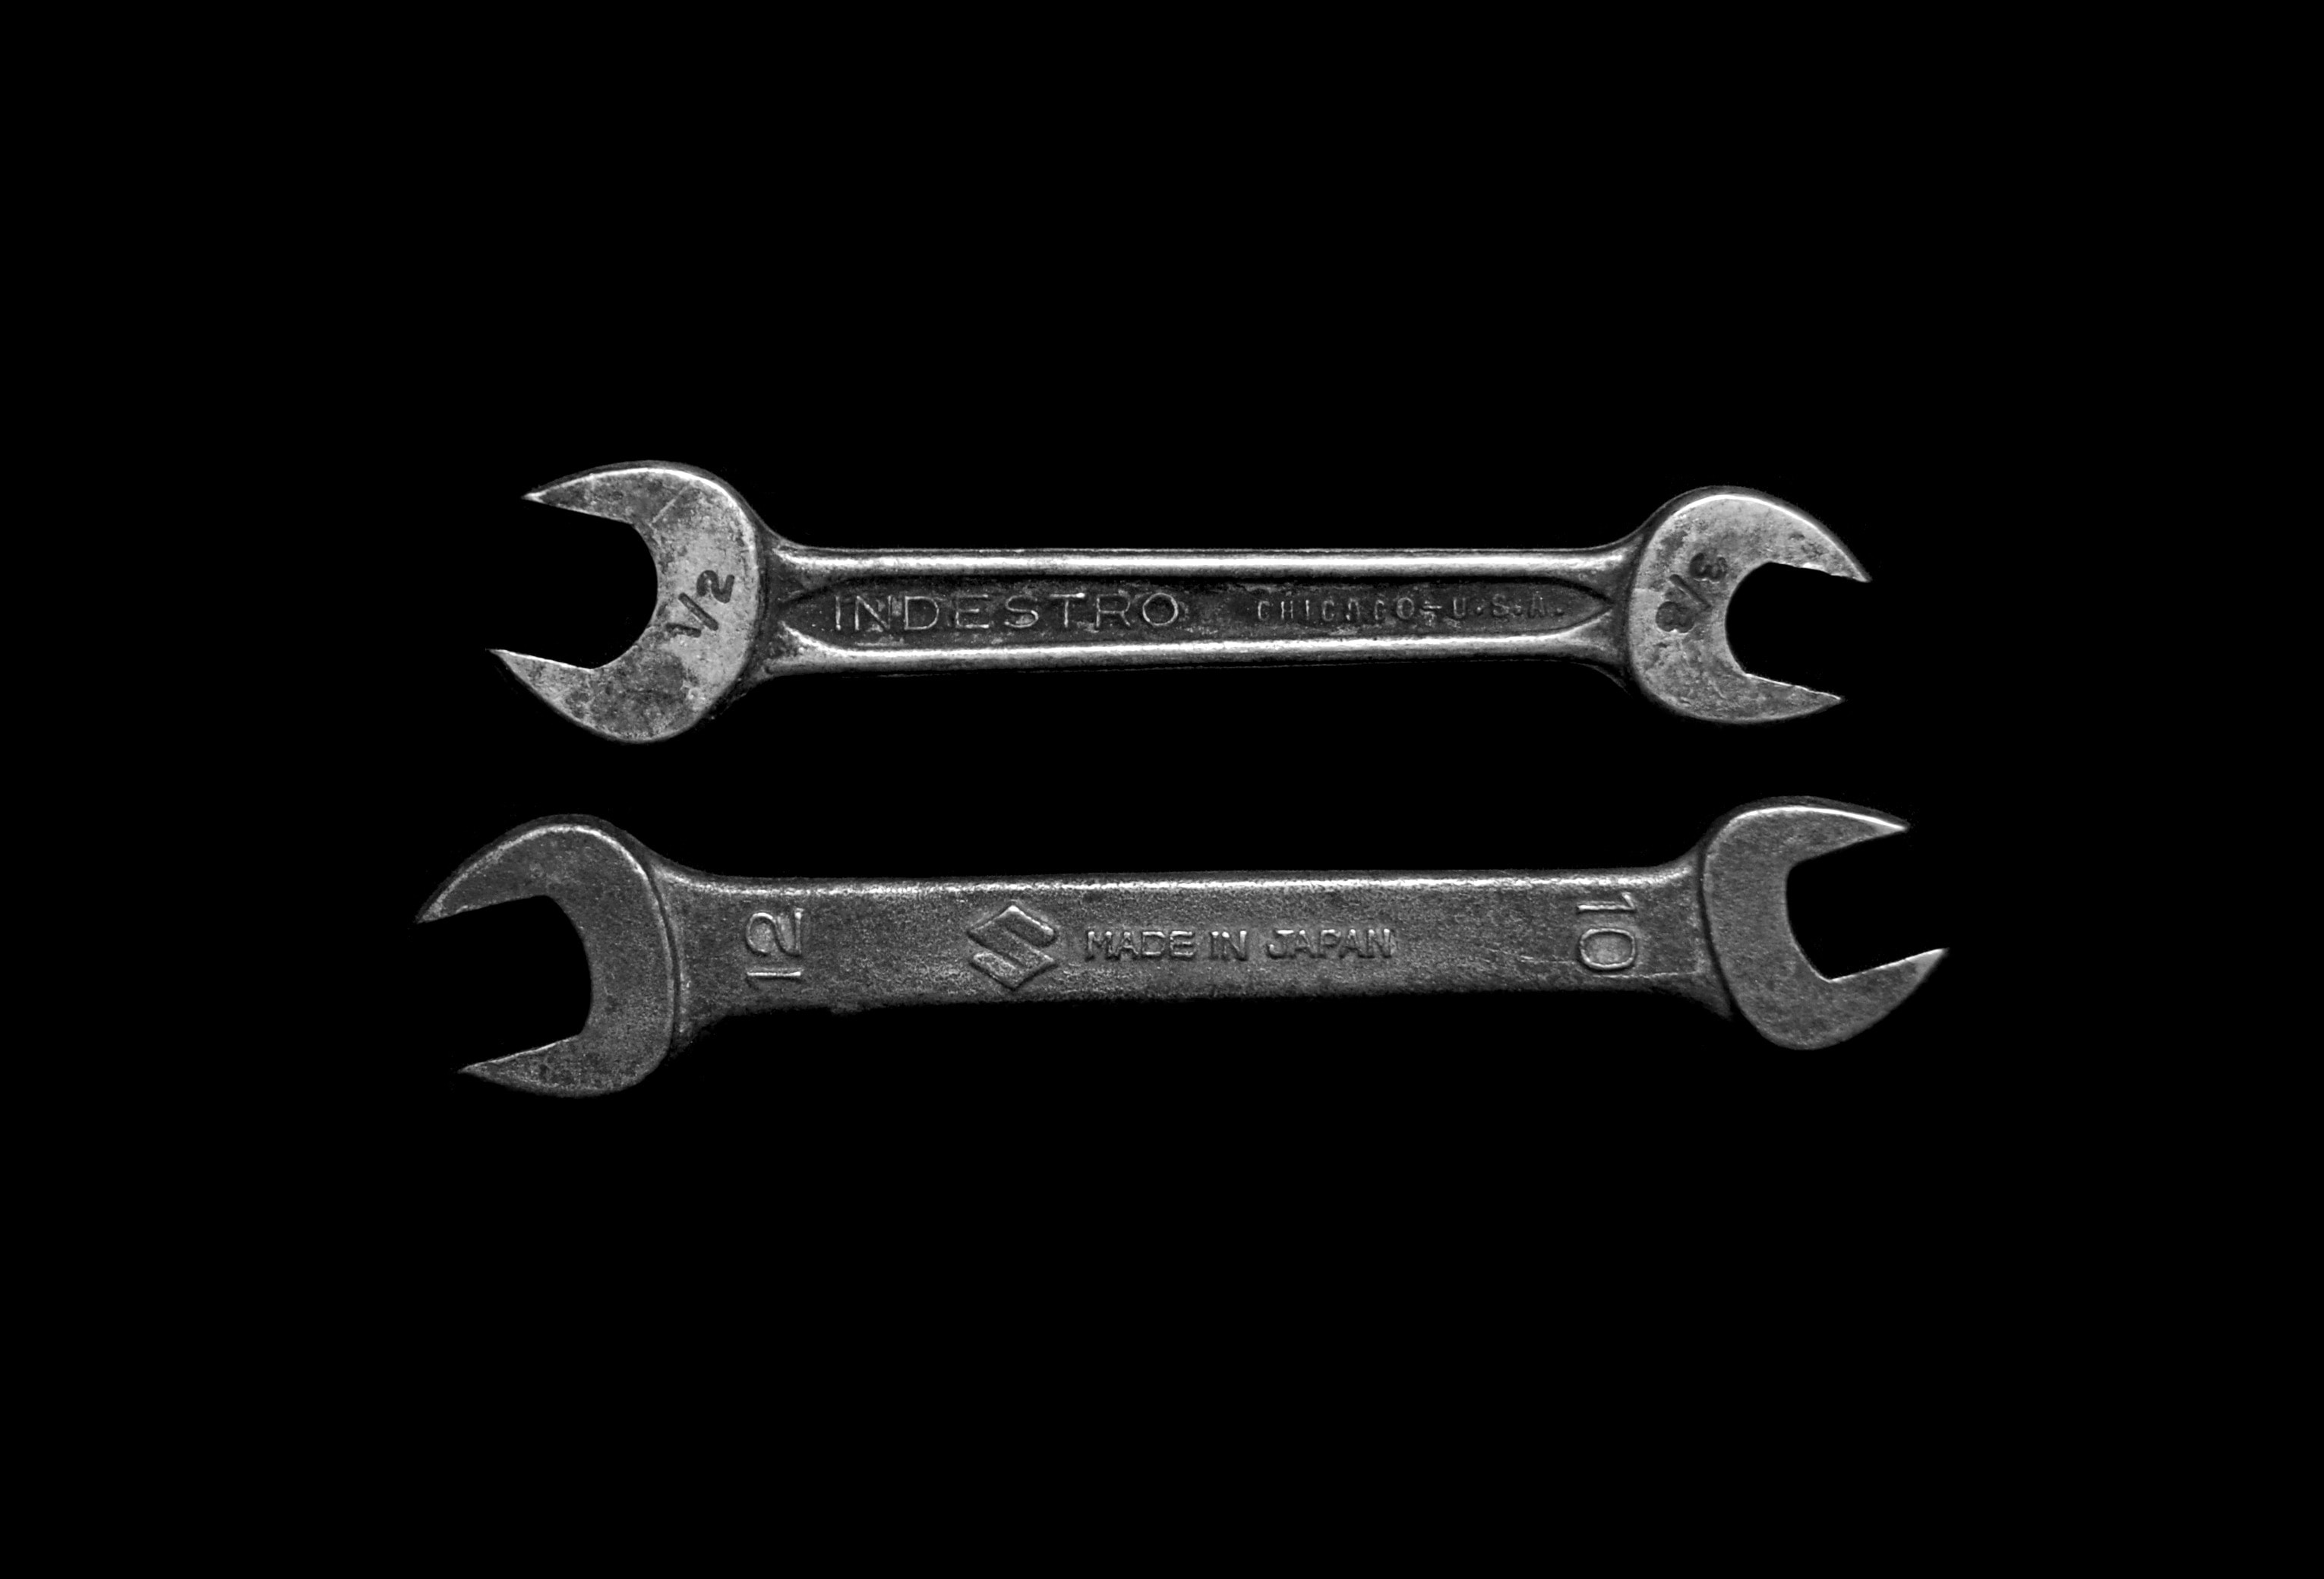 two old-fashioned box wrenches against a dark background